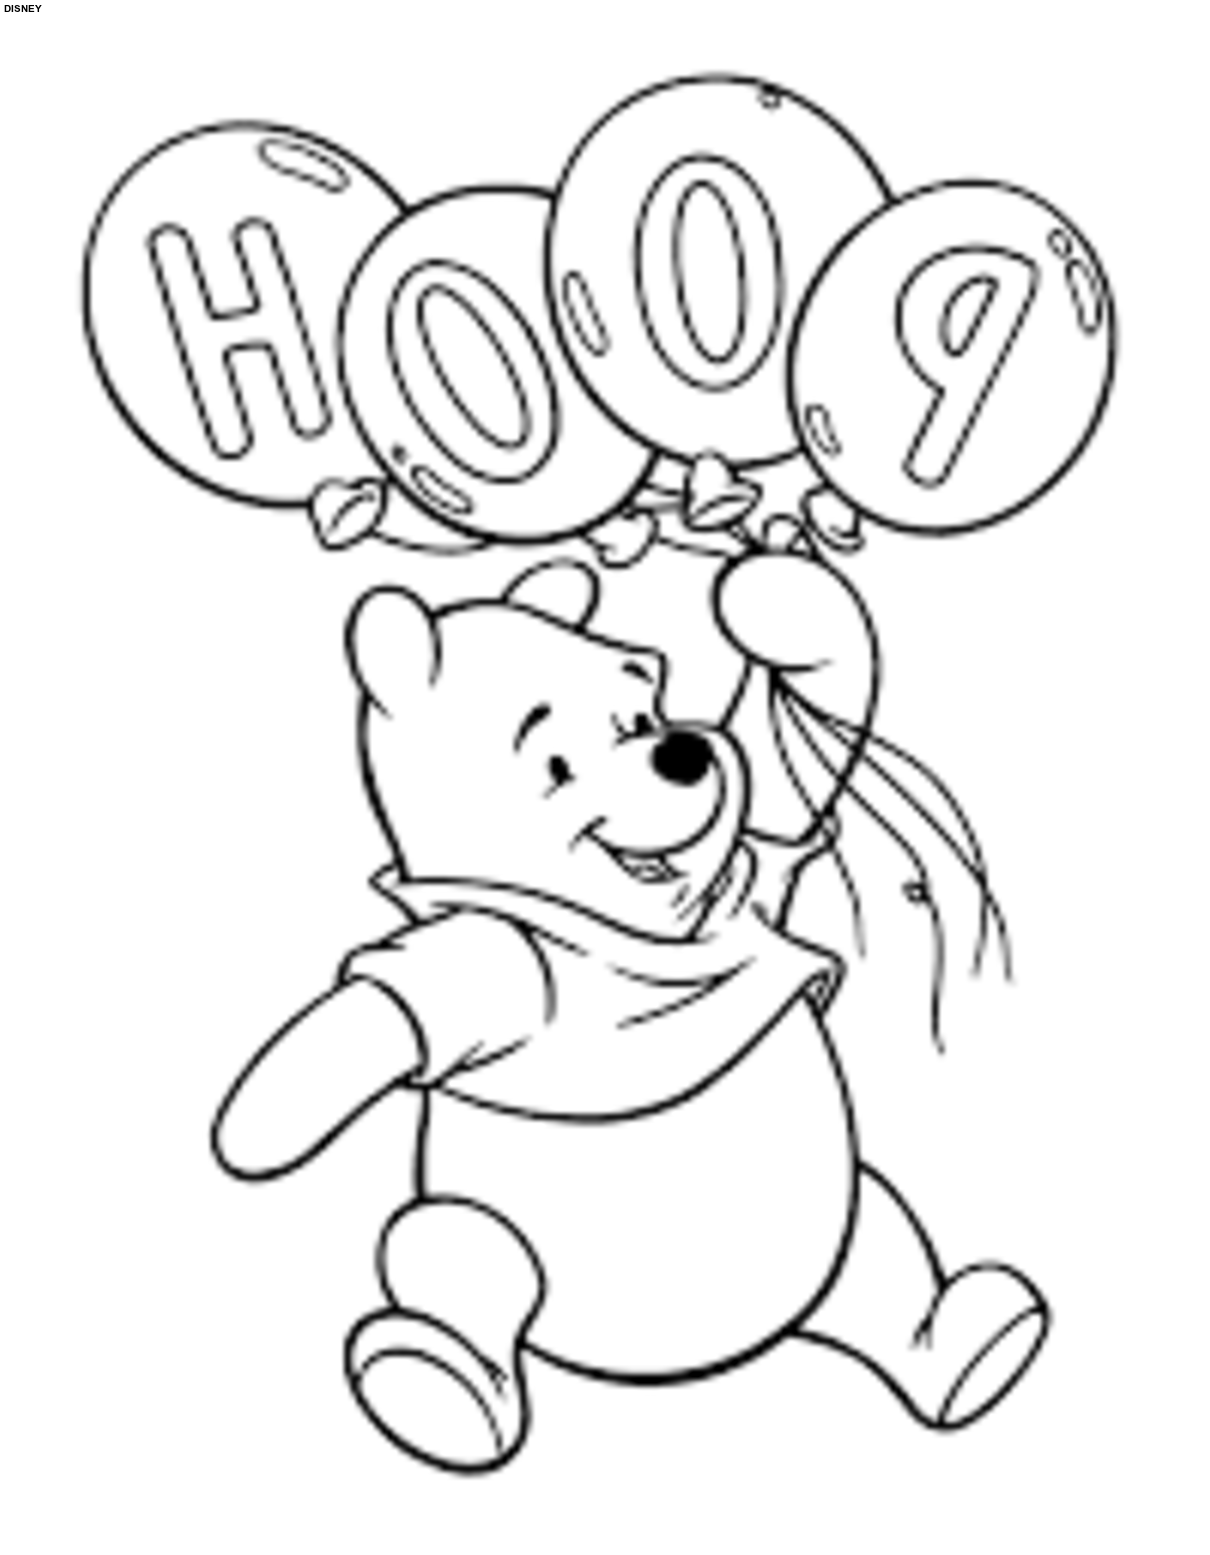 cartoon characters christmas coloring pages - photo#10